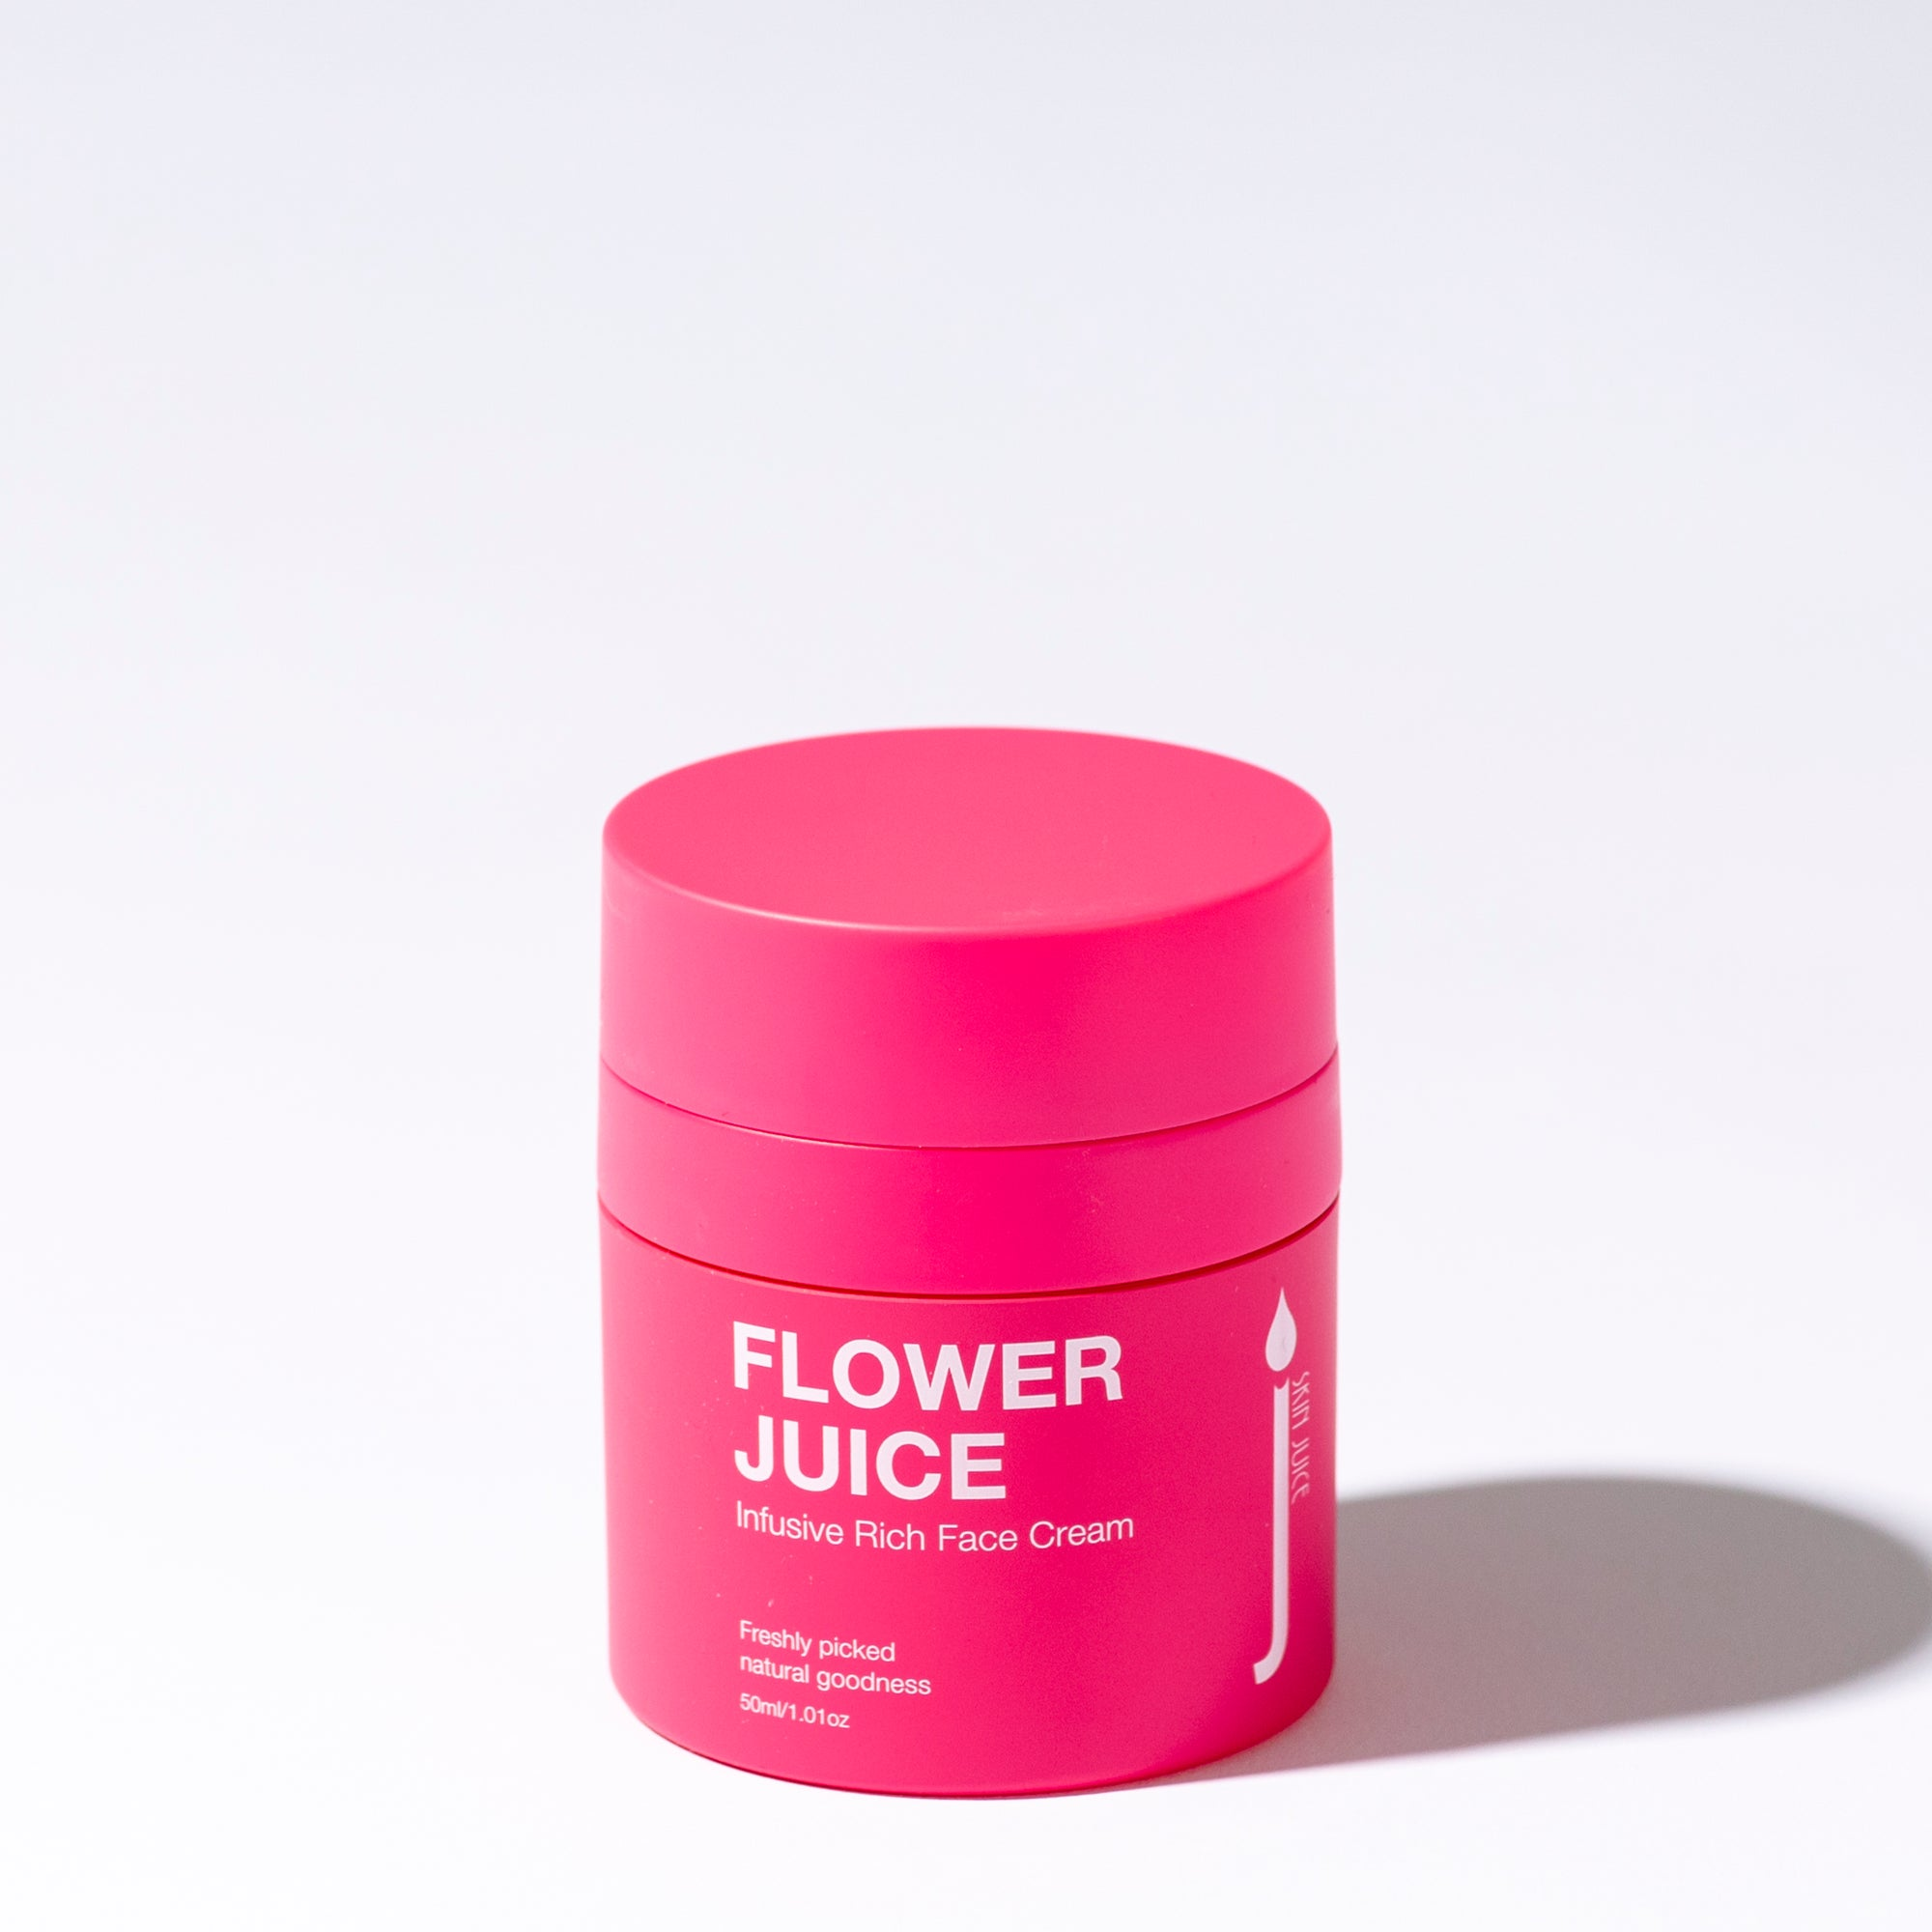 Regenerating and collagen-boosting face moisturiser. Fruit and plant extracts replenish moisture and smooth skin. Offical Skin Juice stockist. Afterpay It.